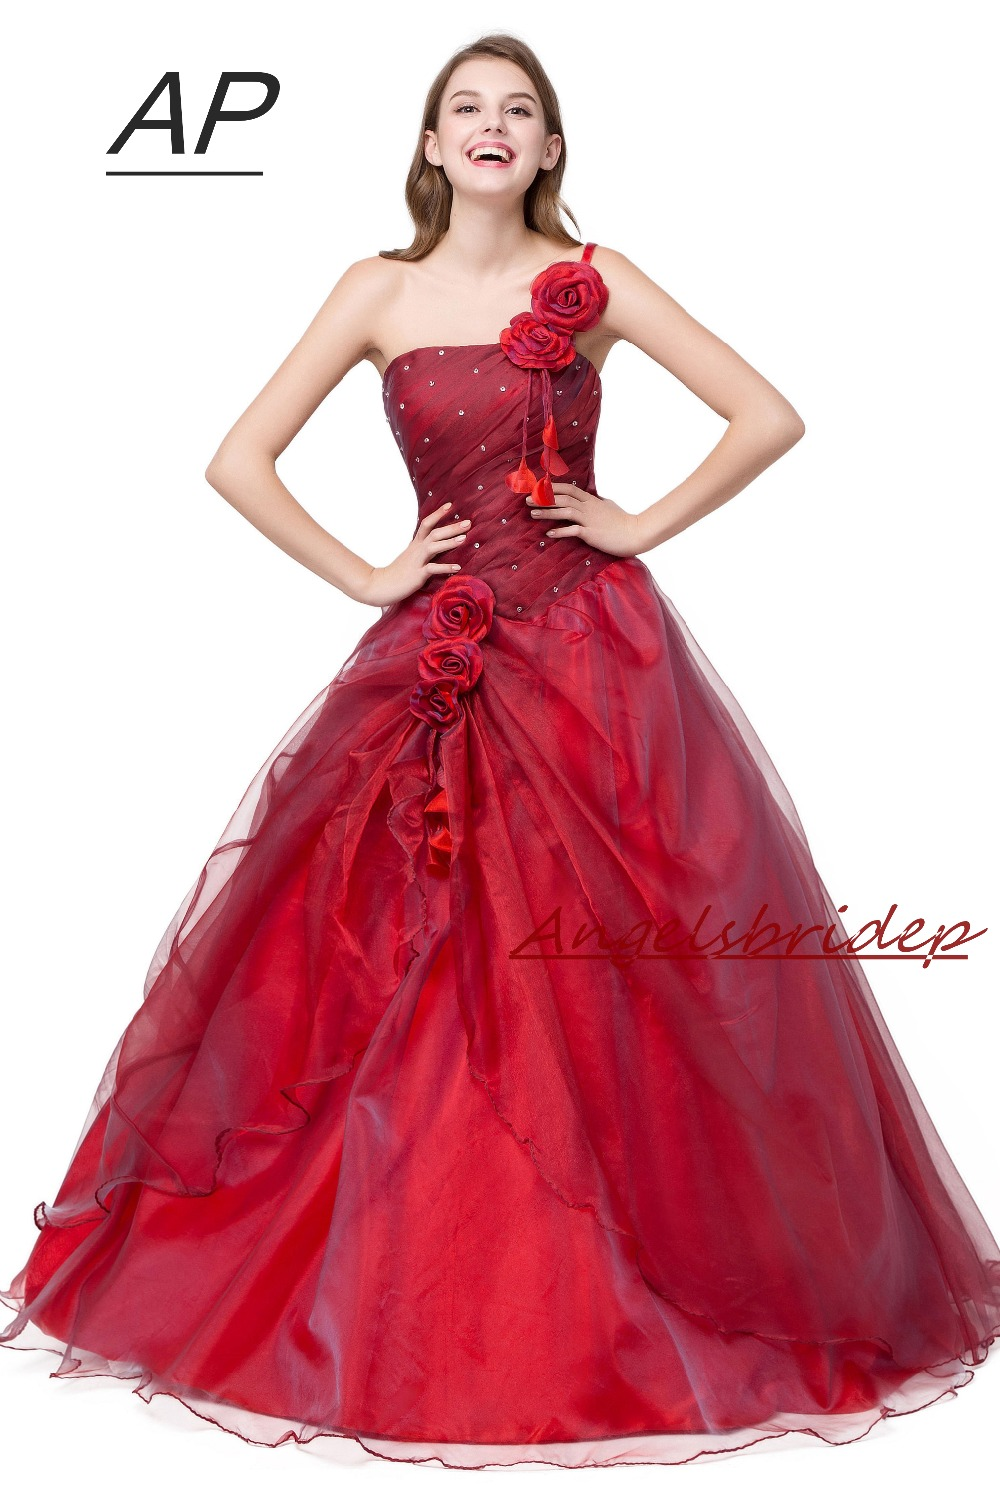 Image 3 - ANGELSBRIDEP Quinceanera Dress Red Vestidos De 15 Anos Sexy One  Shoulder Masquerade Ball Gowns Formal Party Gowns 2020 Hot Saleball  gown formalmasquerade ball gownsquinceanera dresses red